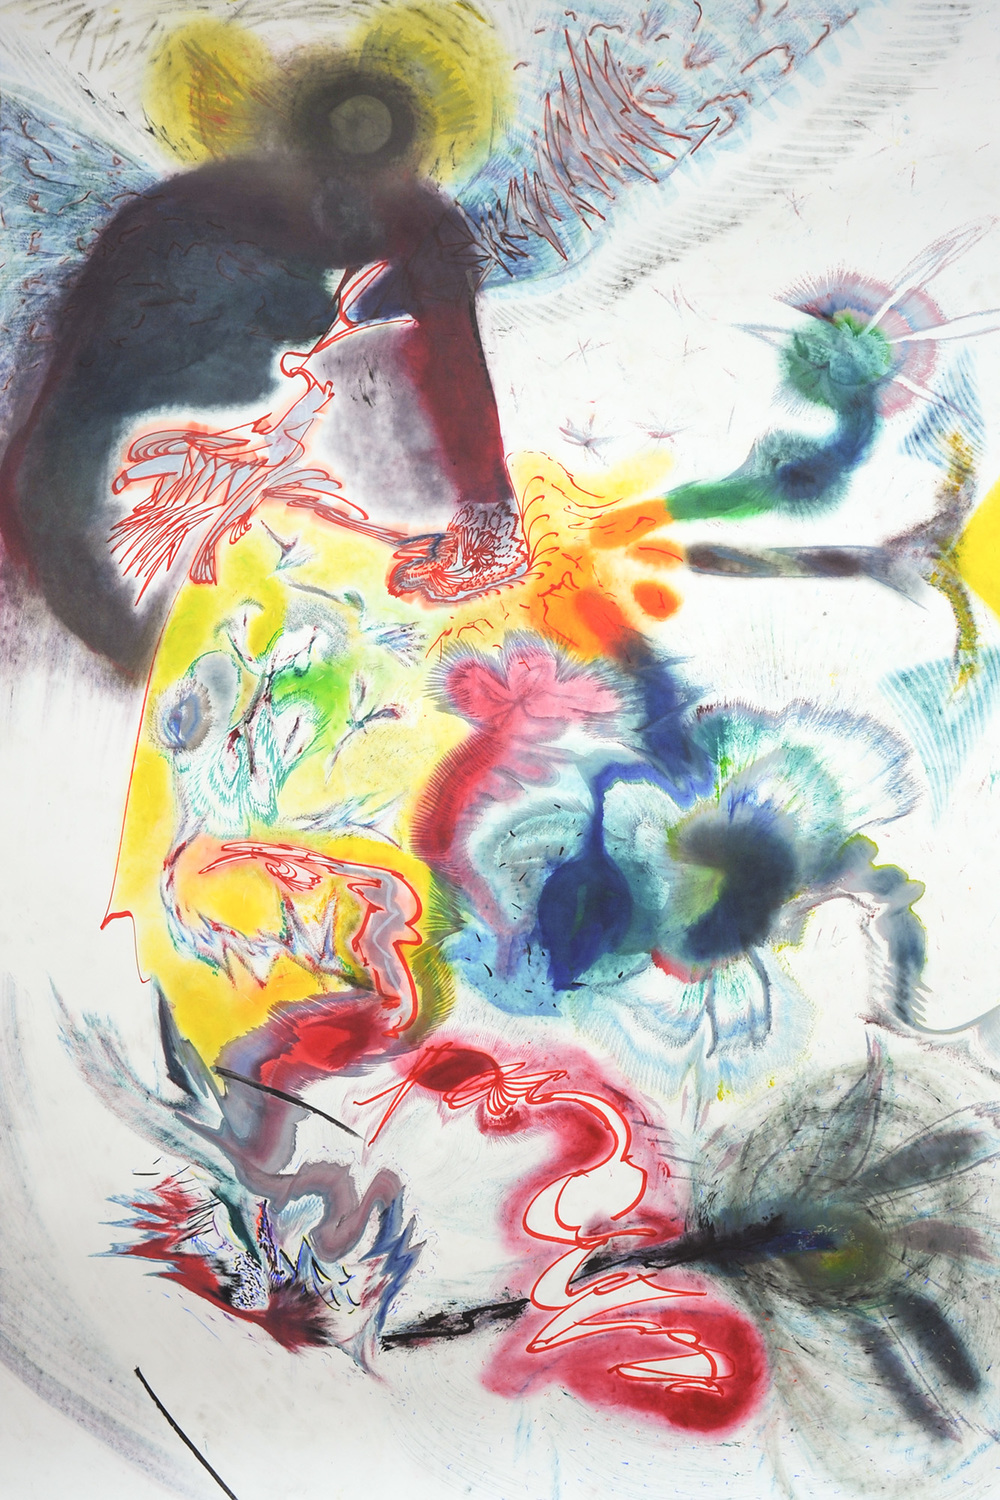 JAKUB MILČÁK  UNTITLED, 2015  MIXED MEDIA ON PAPER  72 x 108 IN  183 x 274 CM  5,000 GBP